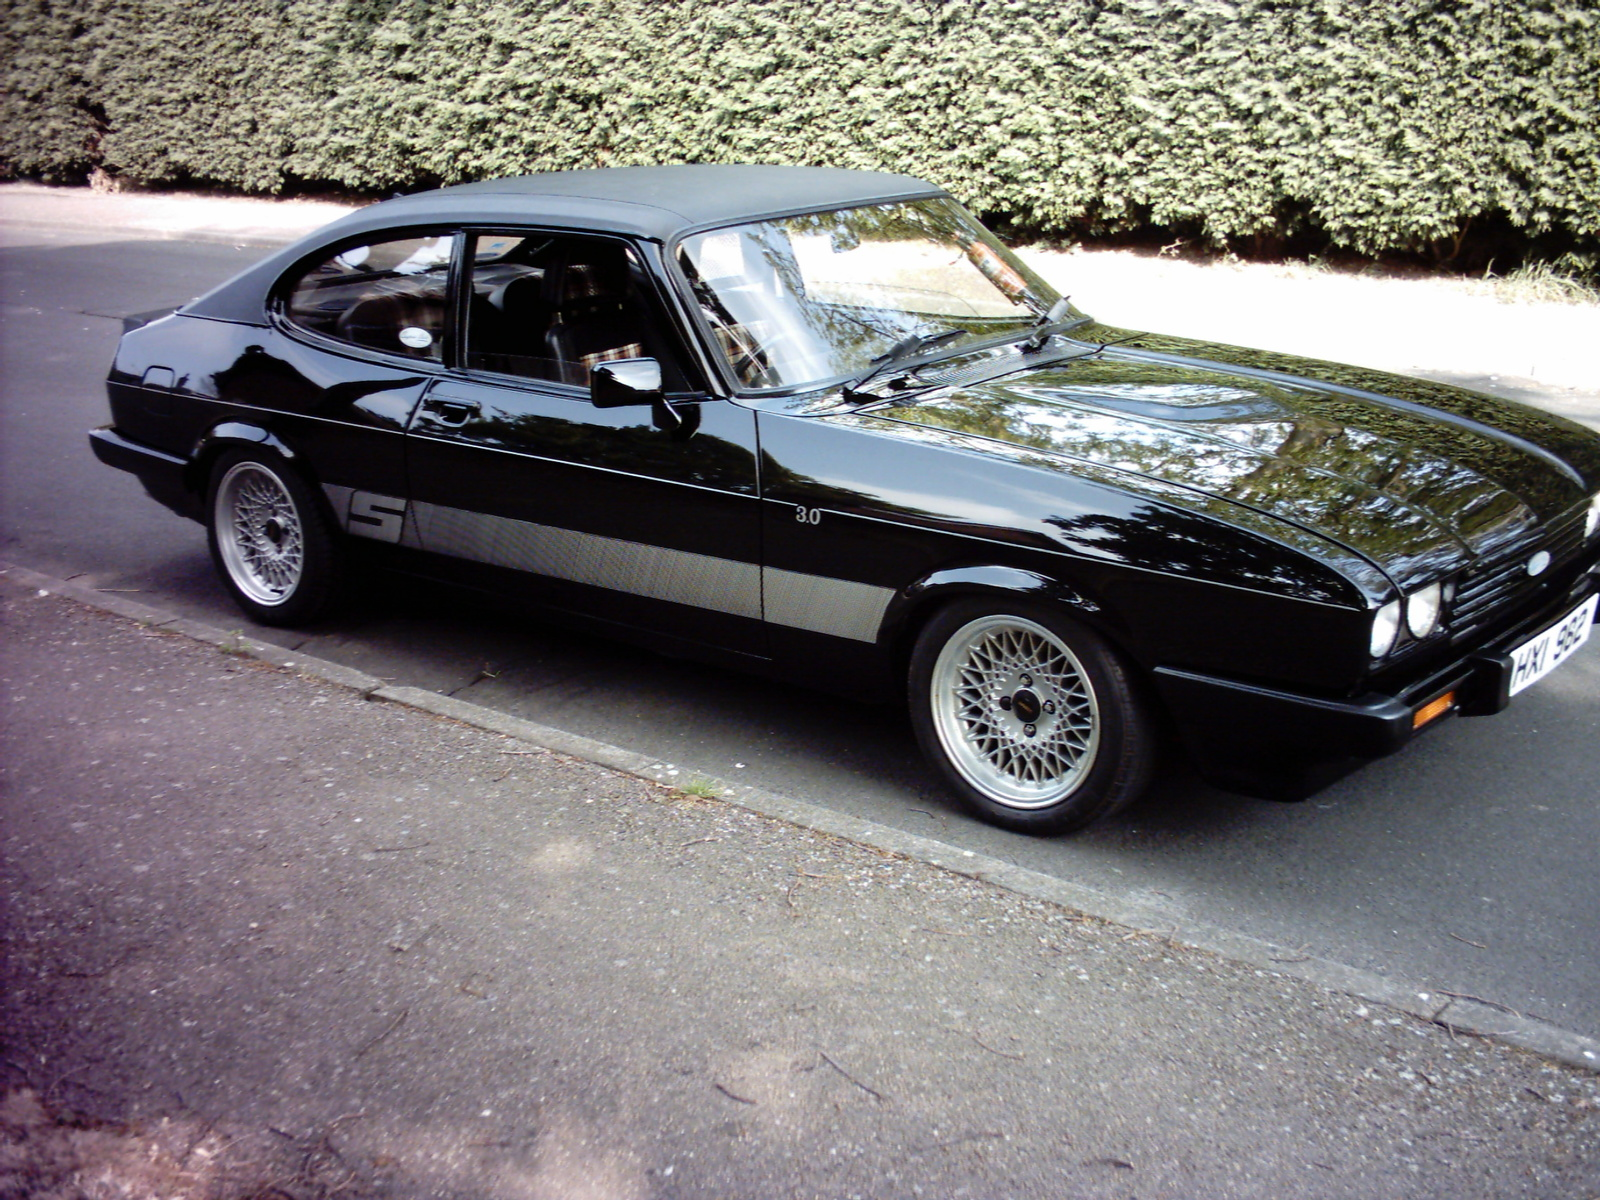 Ford capri 1979 photo - 3